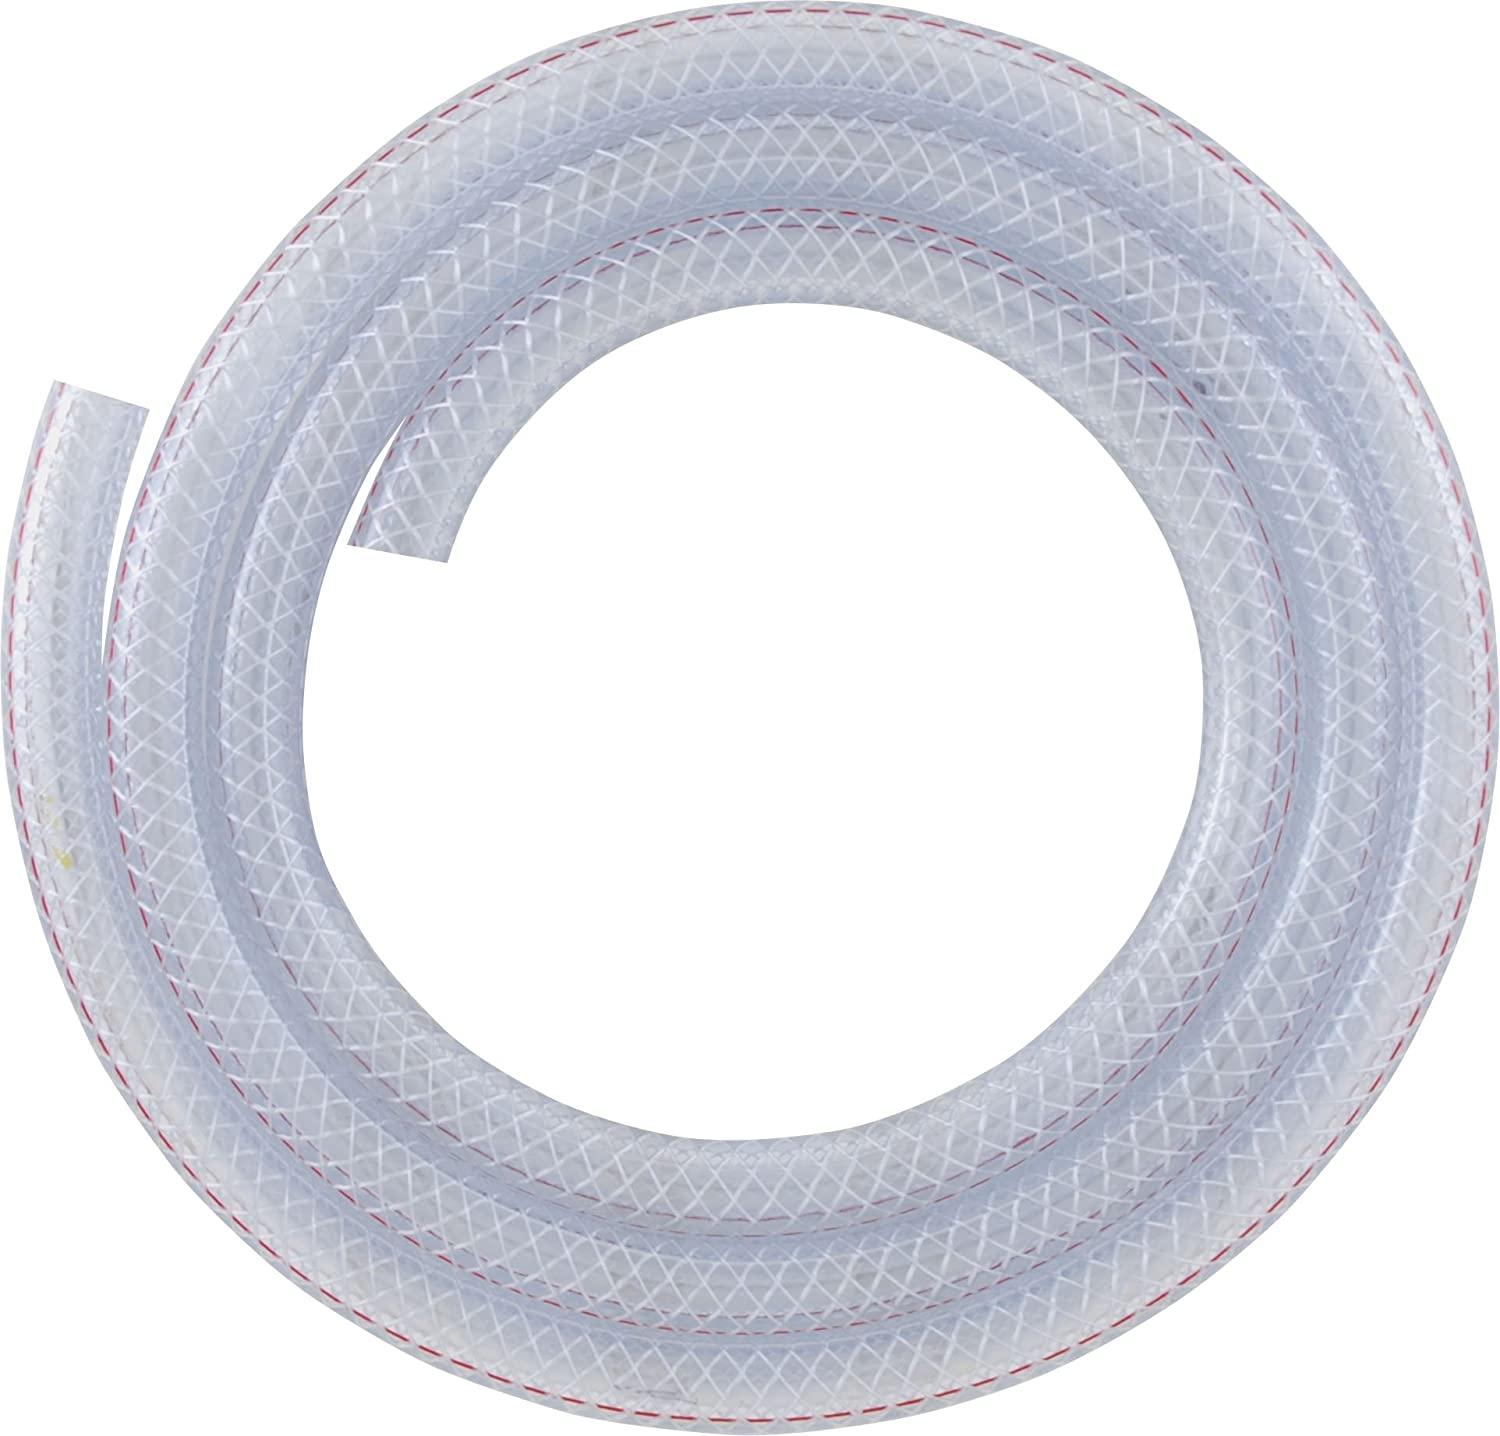 Au. 51mm ID 3 Metre Length Clear Braided PVC Hose With Synthetic Reinforment